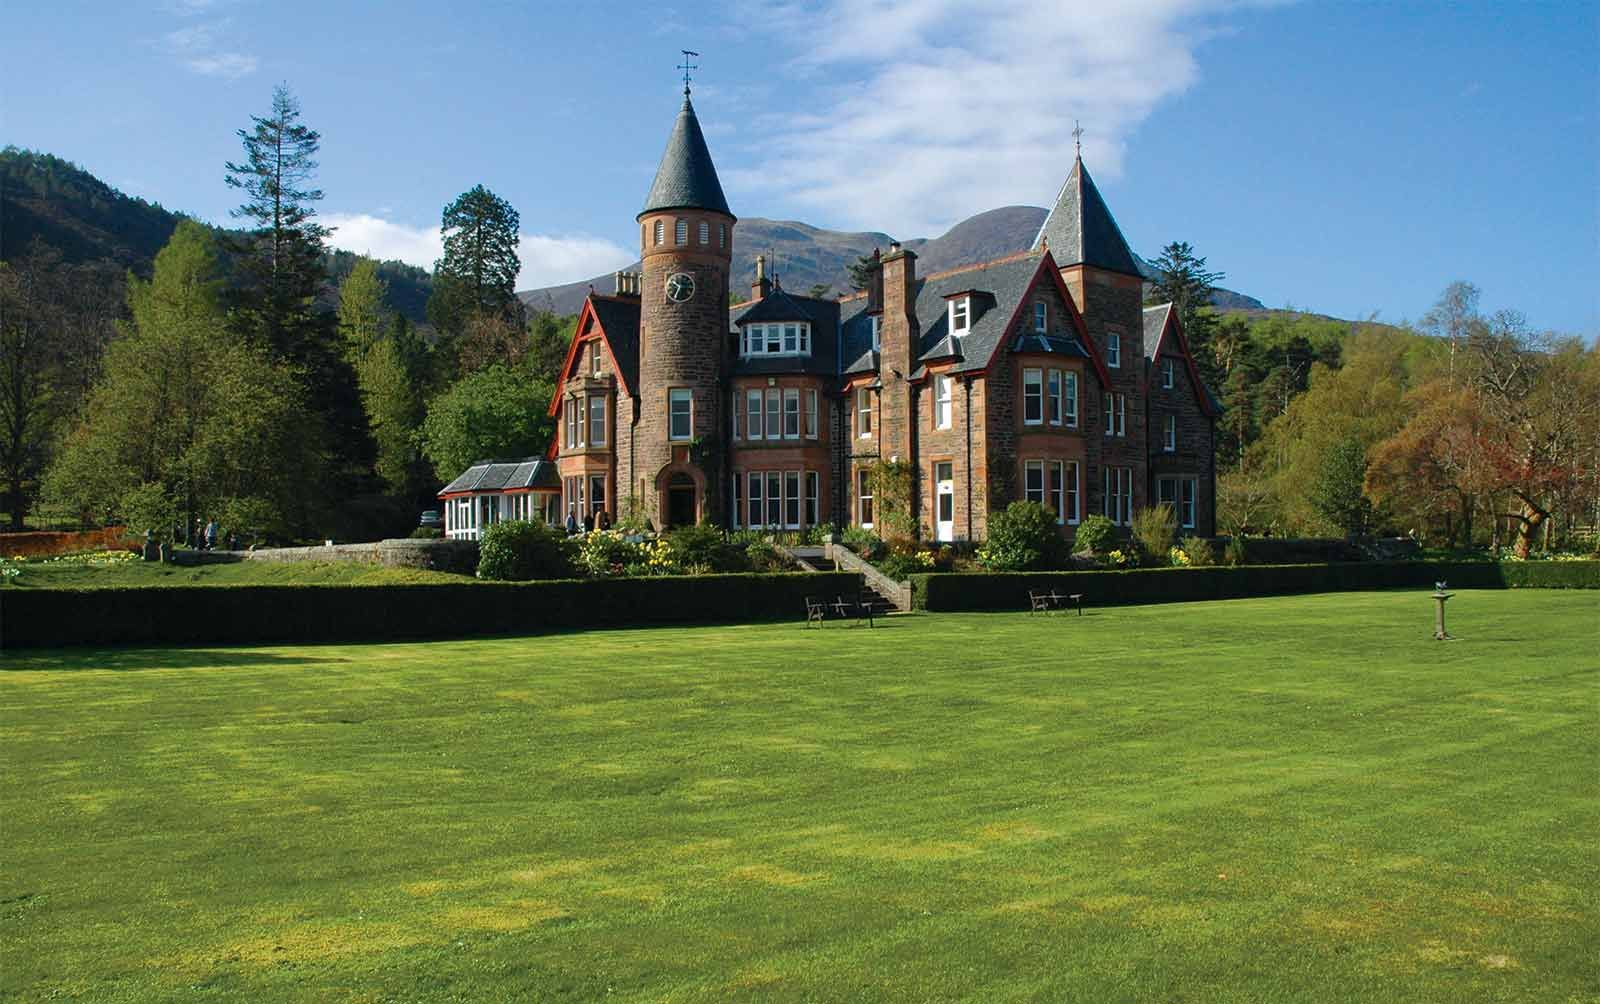 The Torridon Luxury Hotel And Inn In Highlands Of Scotland